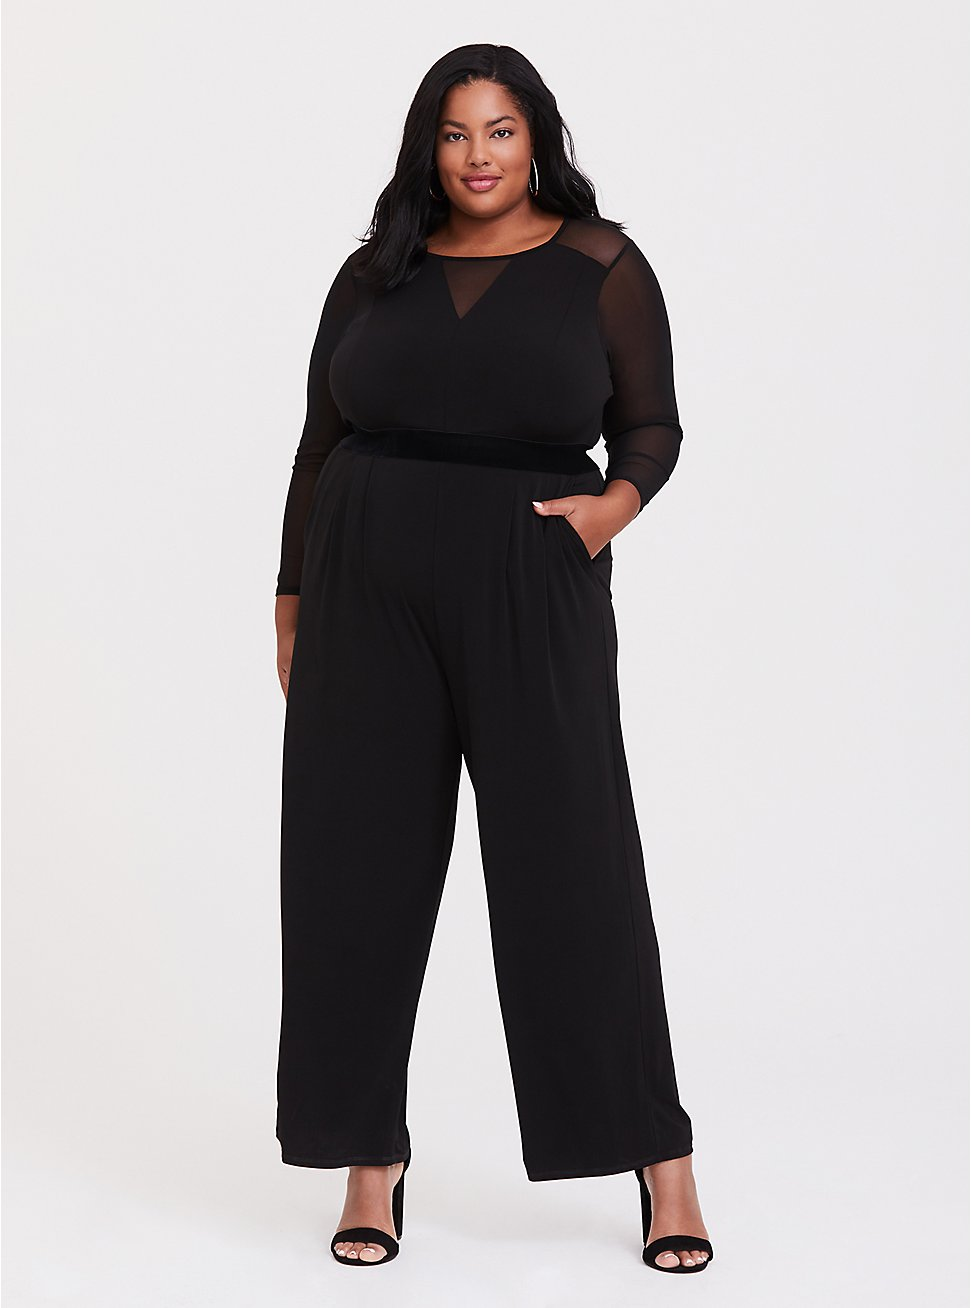 Black Studio Knit Wide Leg Jumpsuit, DEEP BLACK, hi-res